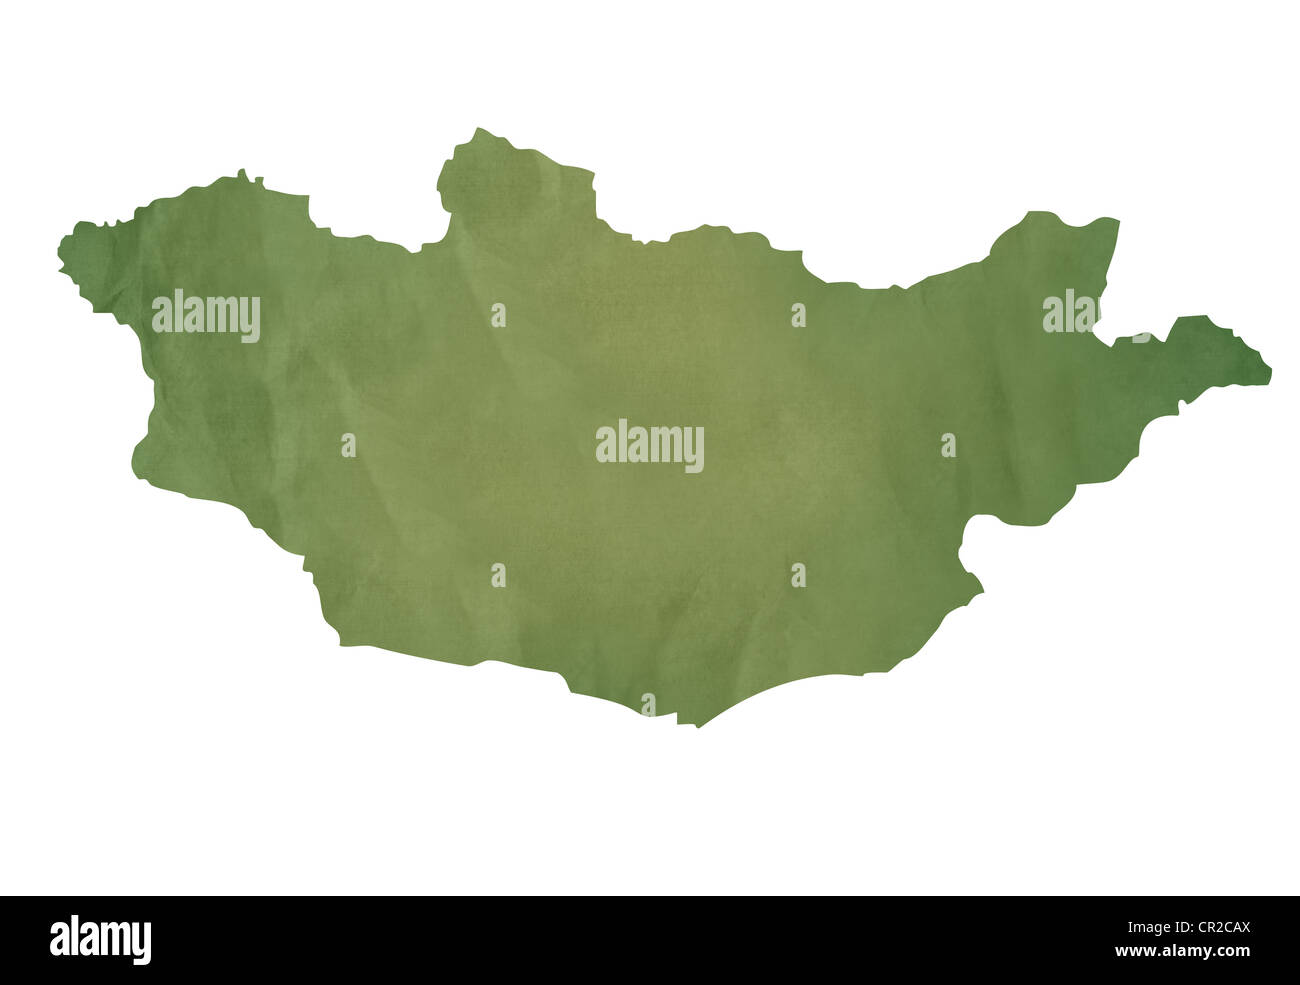 Old green map of Mongolia in textured green paper, isolated on white background. - Stock Image